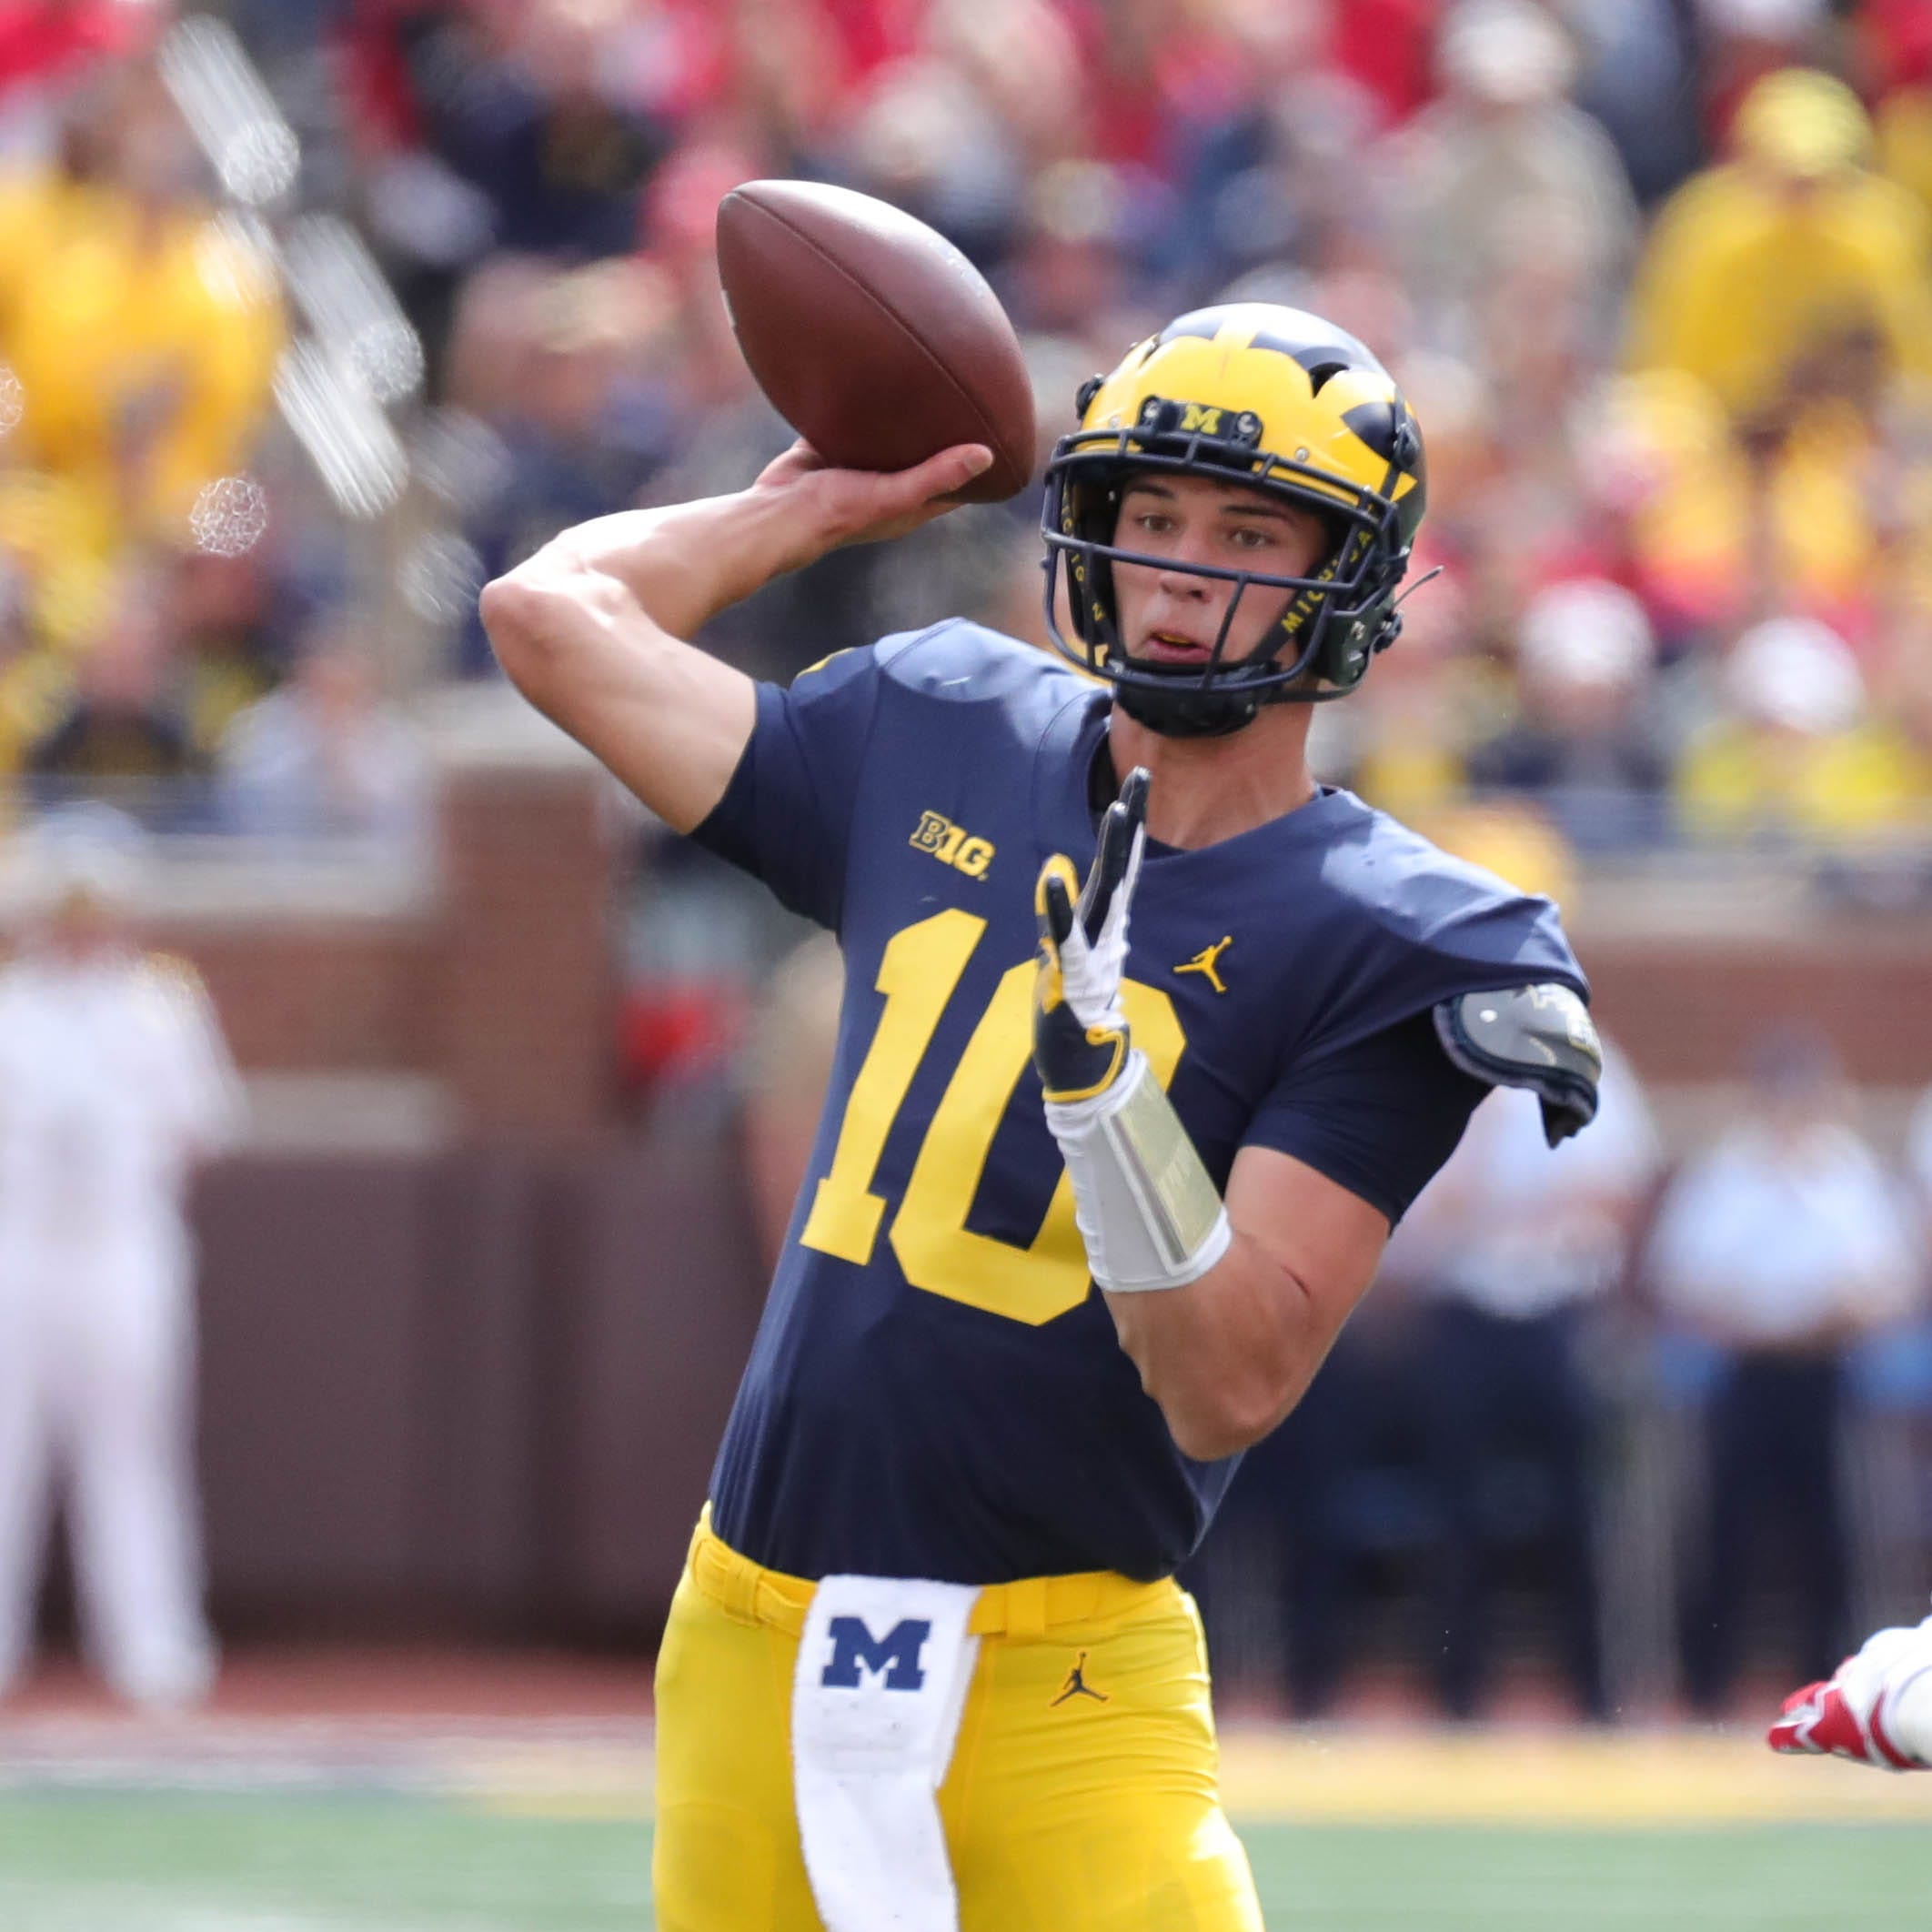 Michigan football quarterback Dylan McCaffrey embraces his role